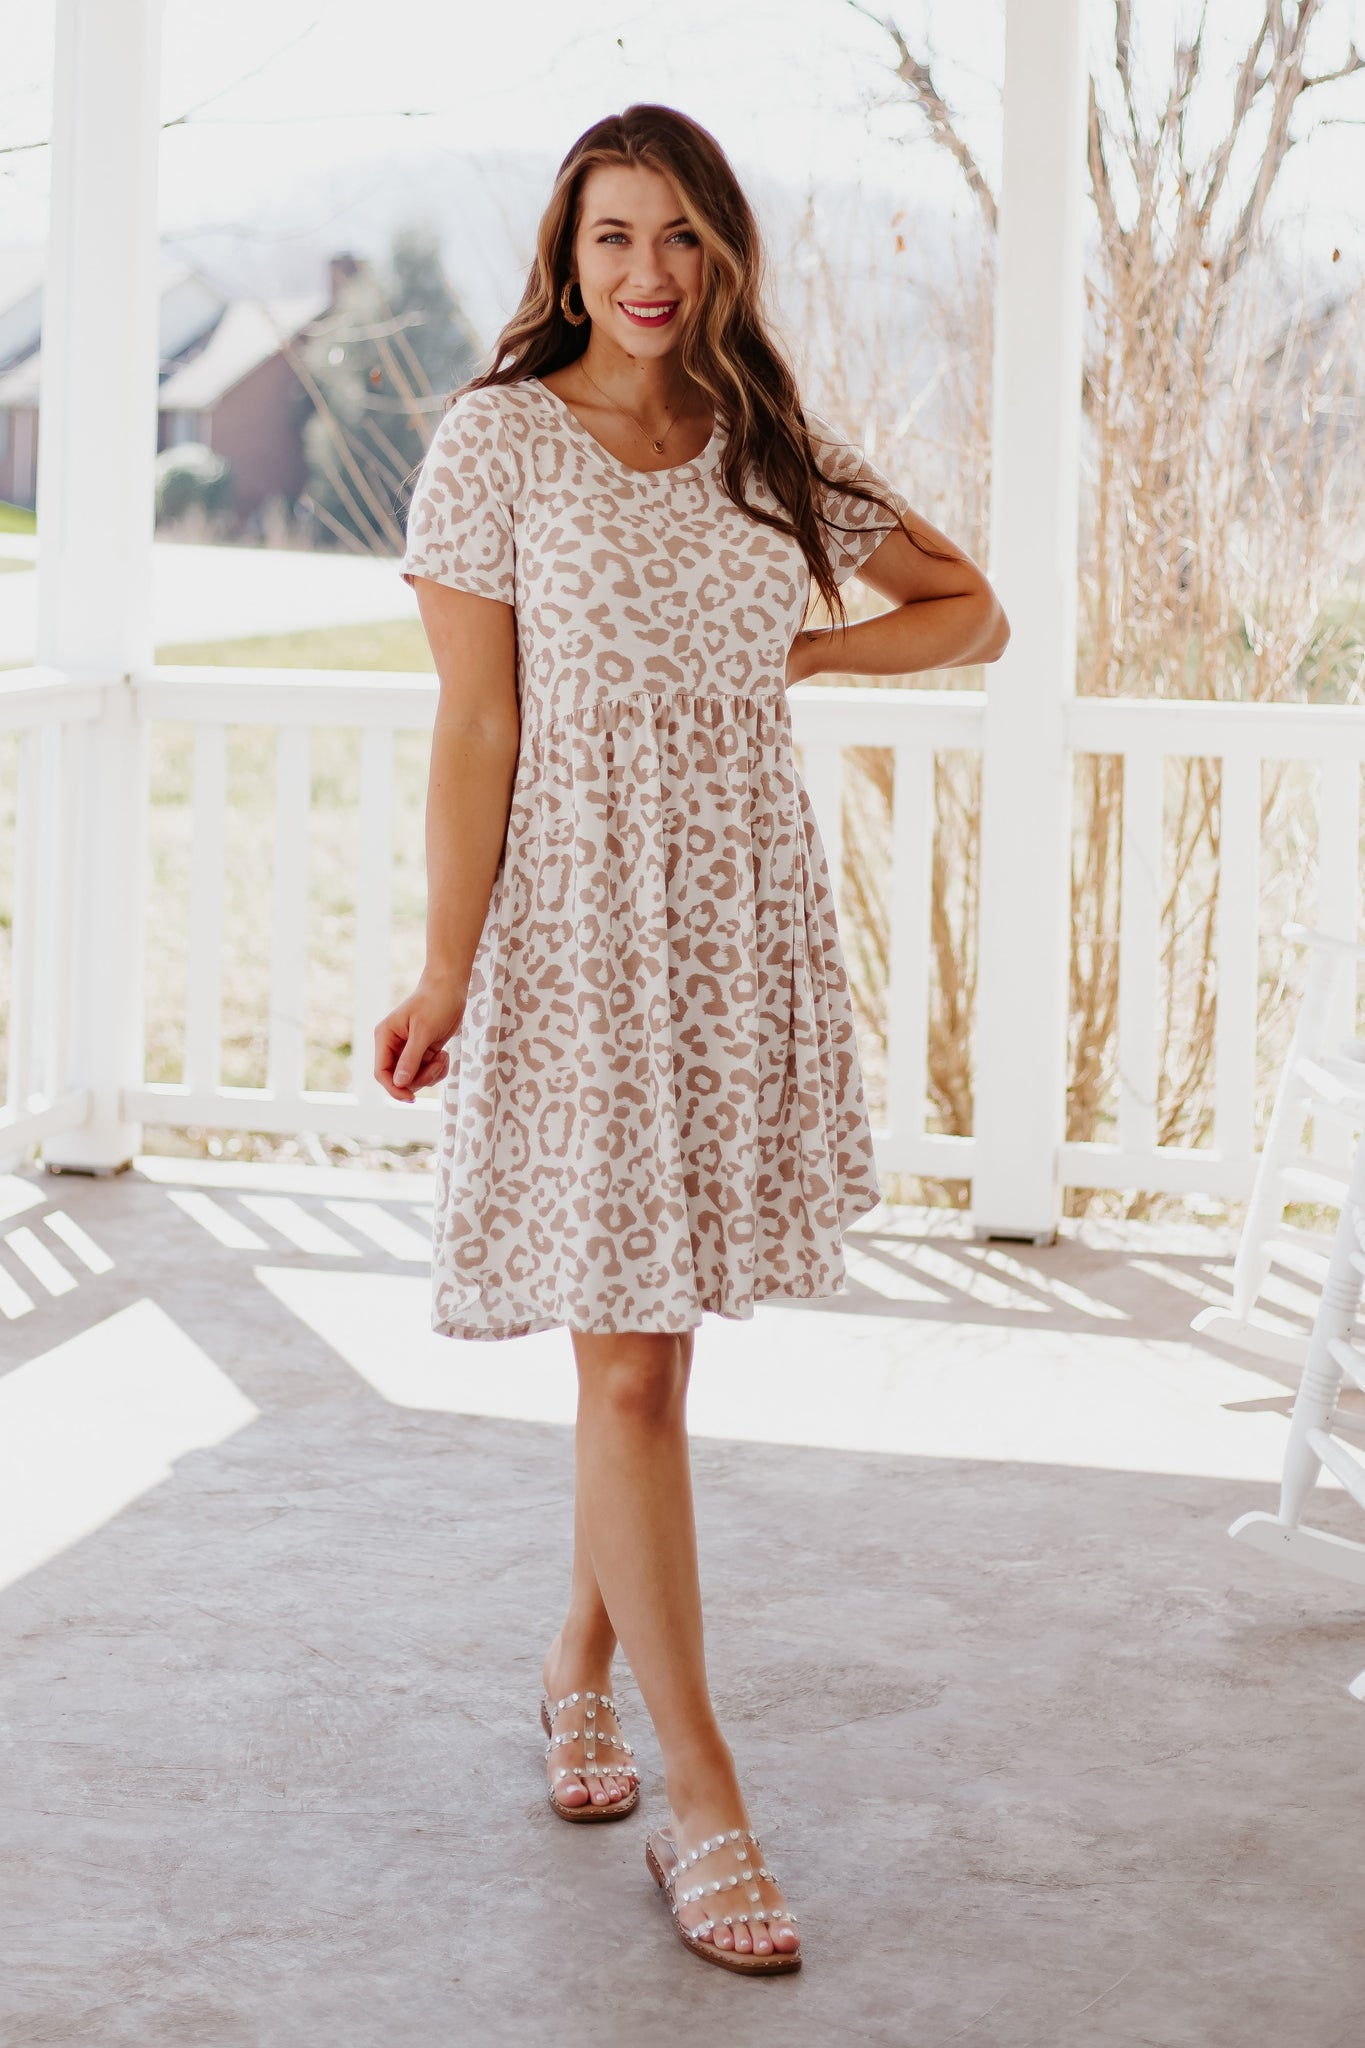 *NEW* Makayla Babydoll Leopard Dress